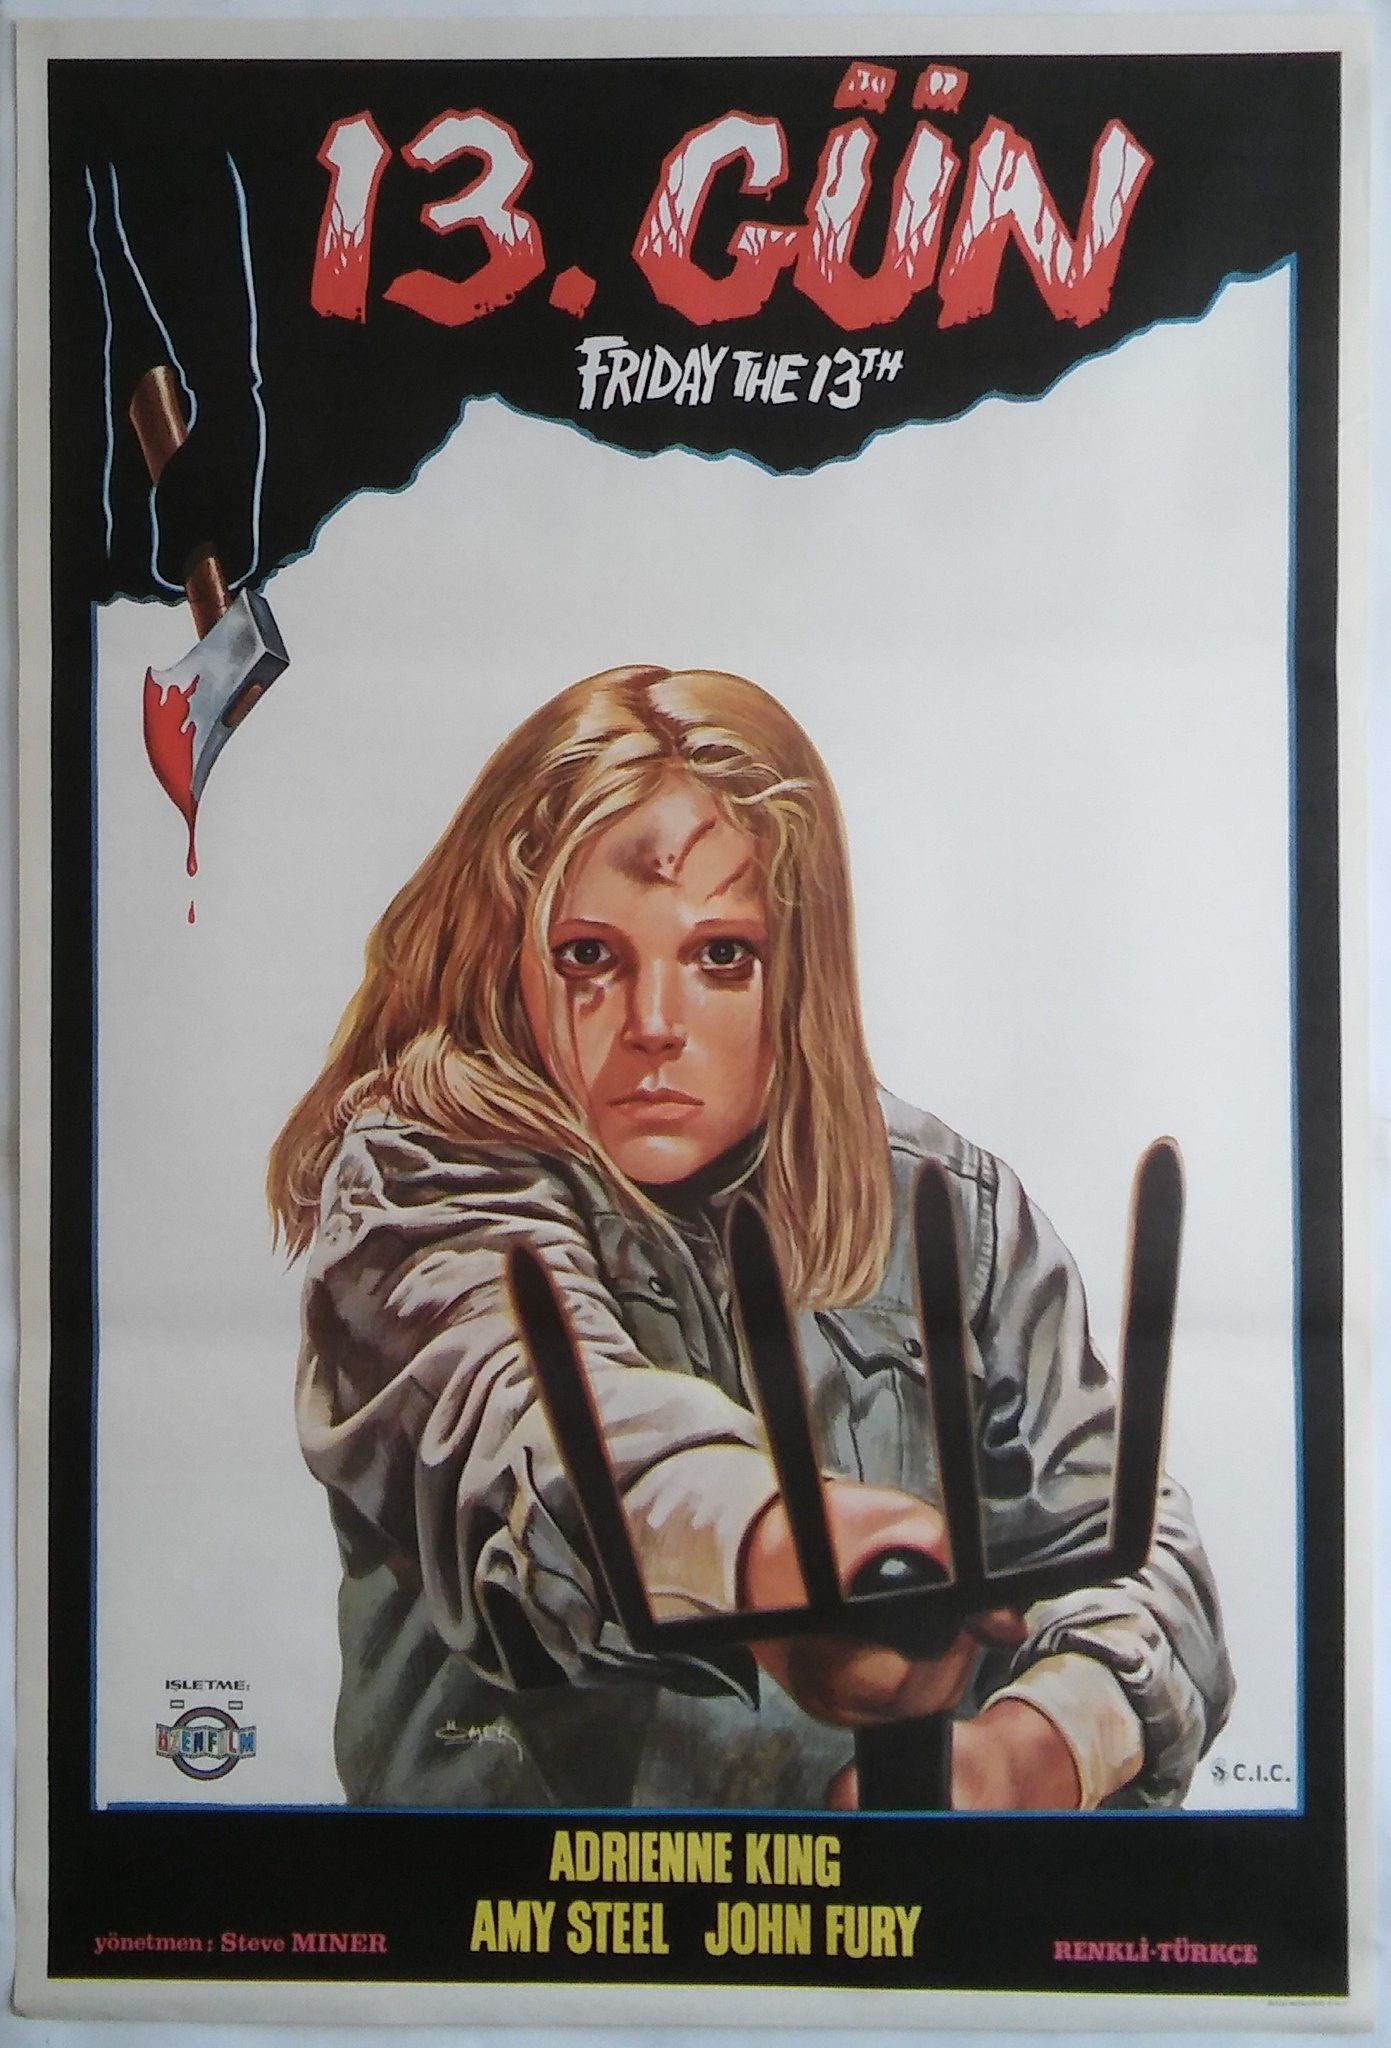 Friday The 13th Horror Movie Posters Movie Posters Design Friday The 13th